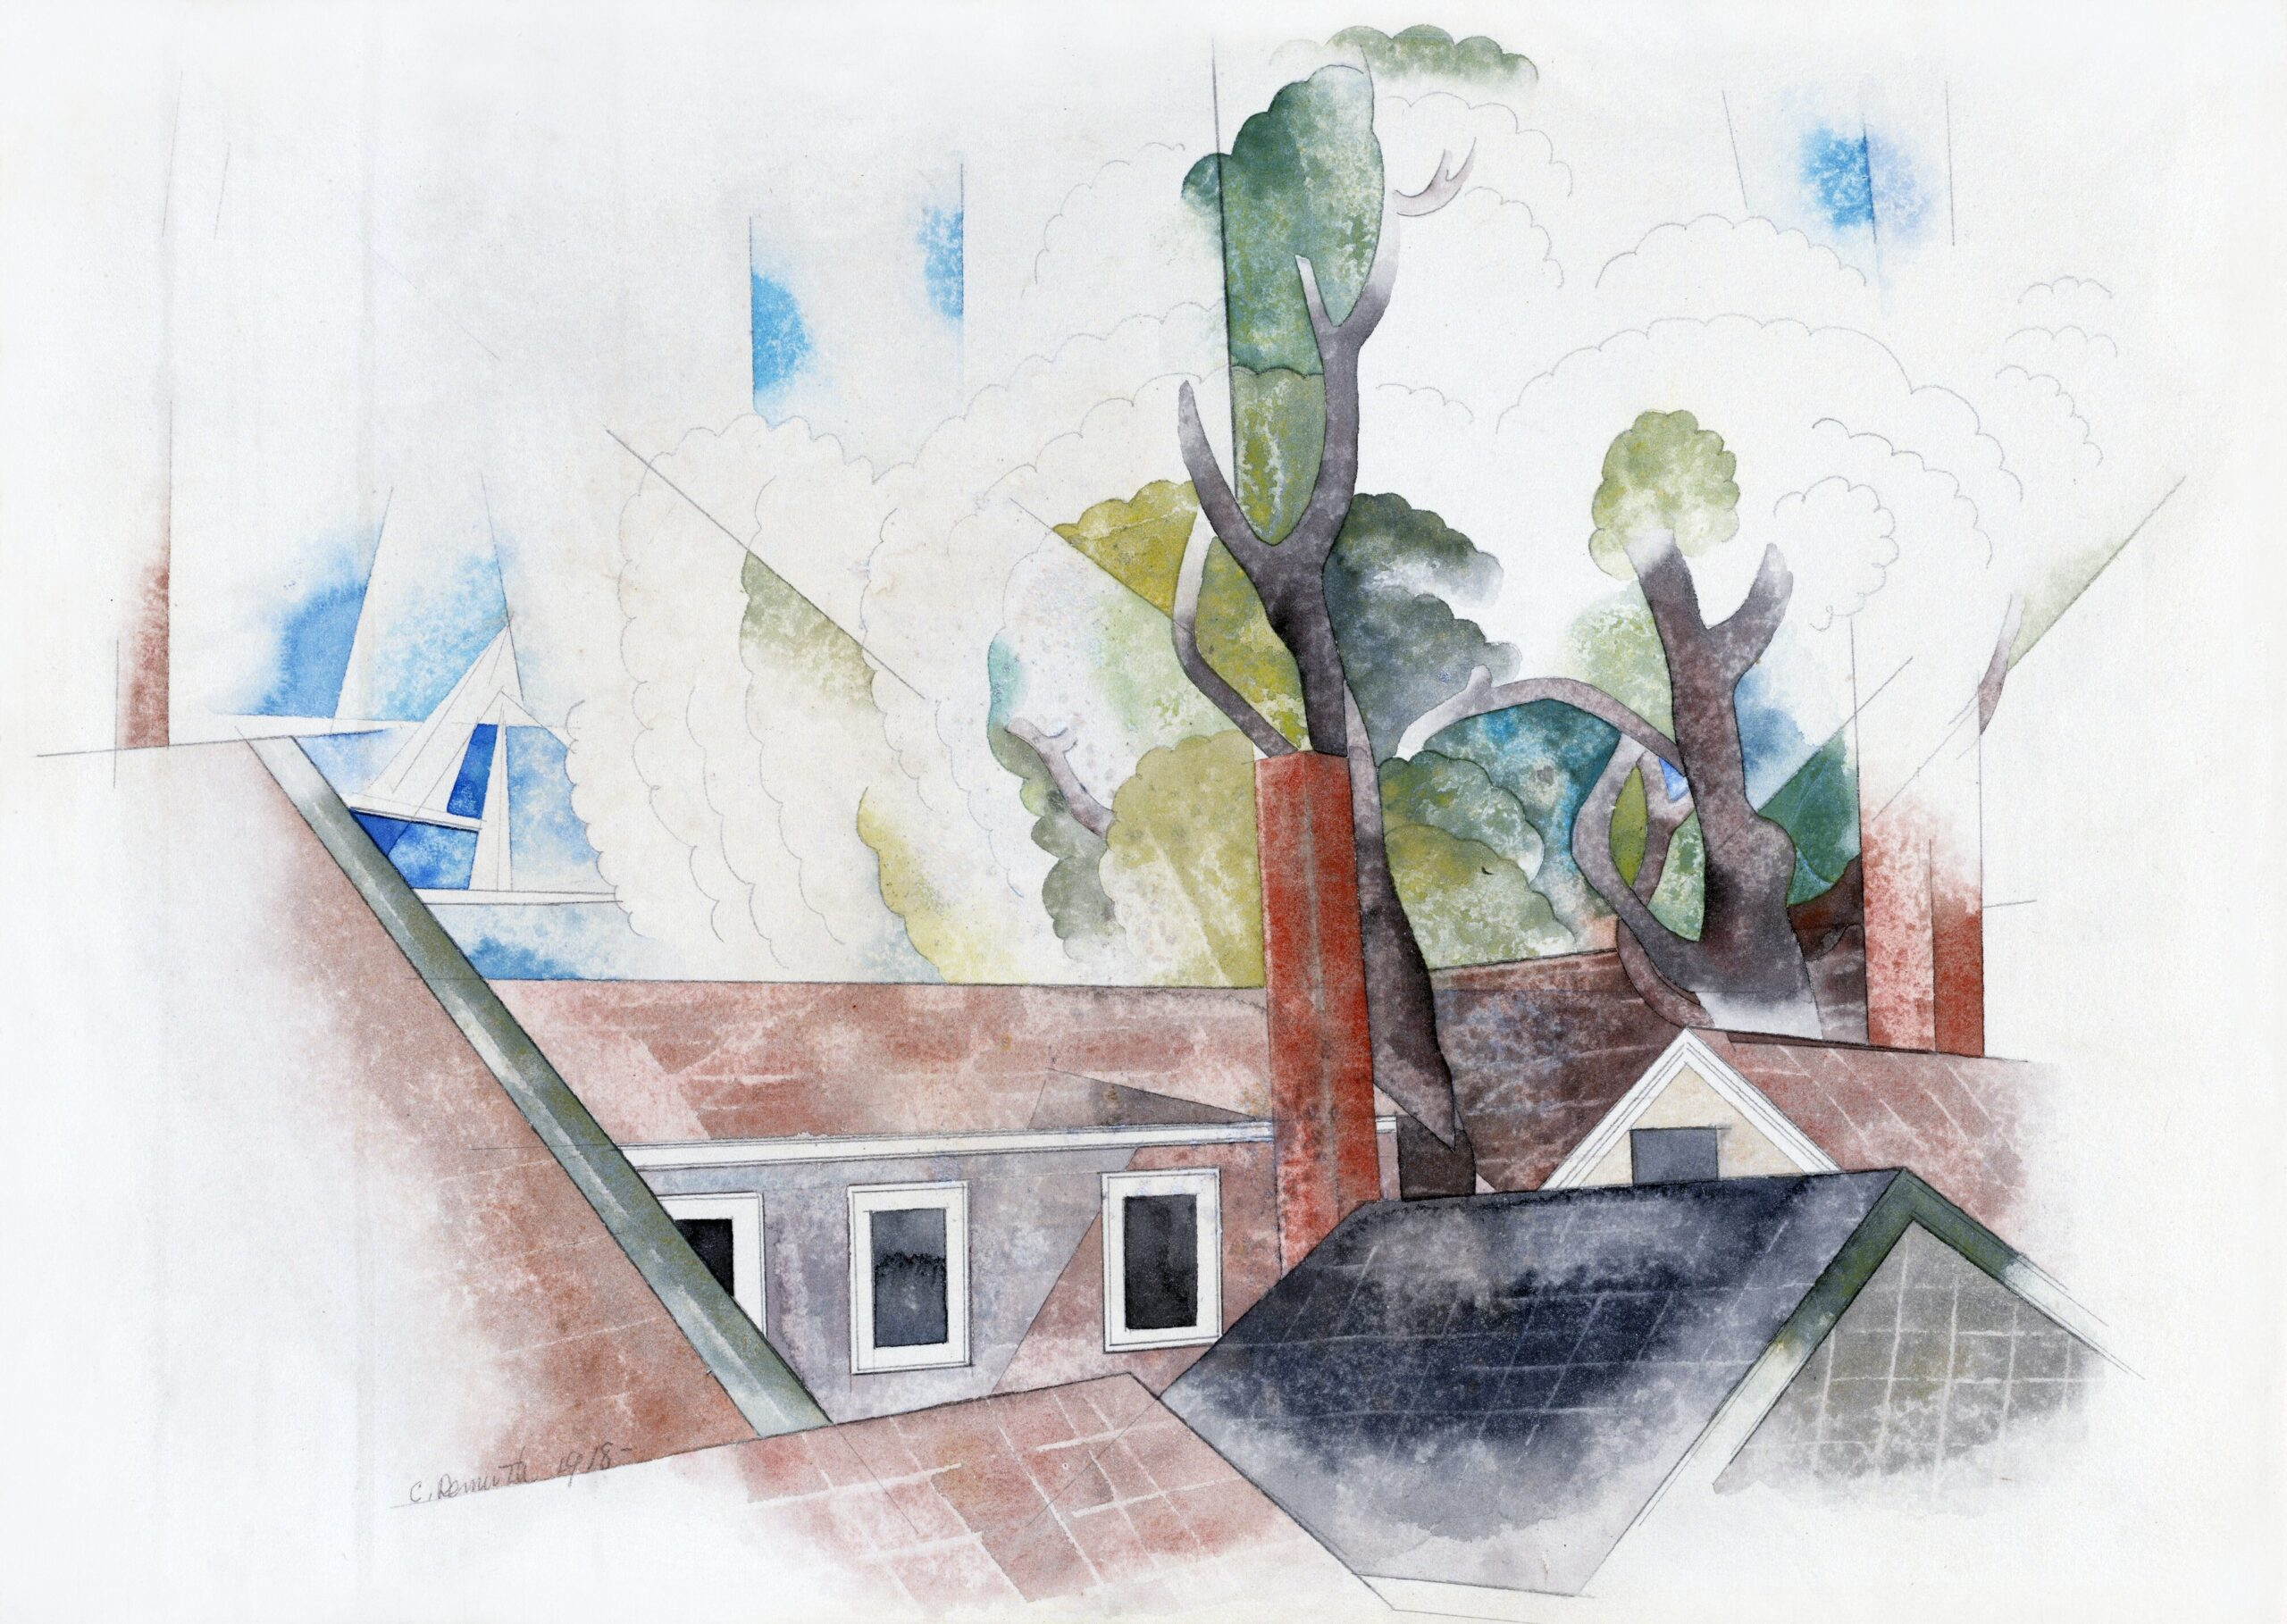 Rooftops and Trees (1918) painting in high resolution by Charles Demuth. Original from National Gallery of Art. Digitally enhanced by rawpixel.